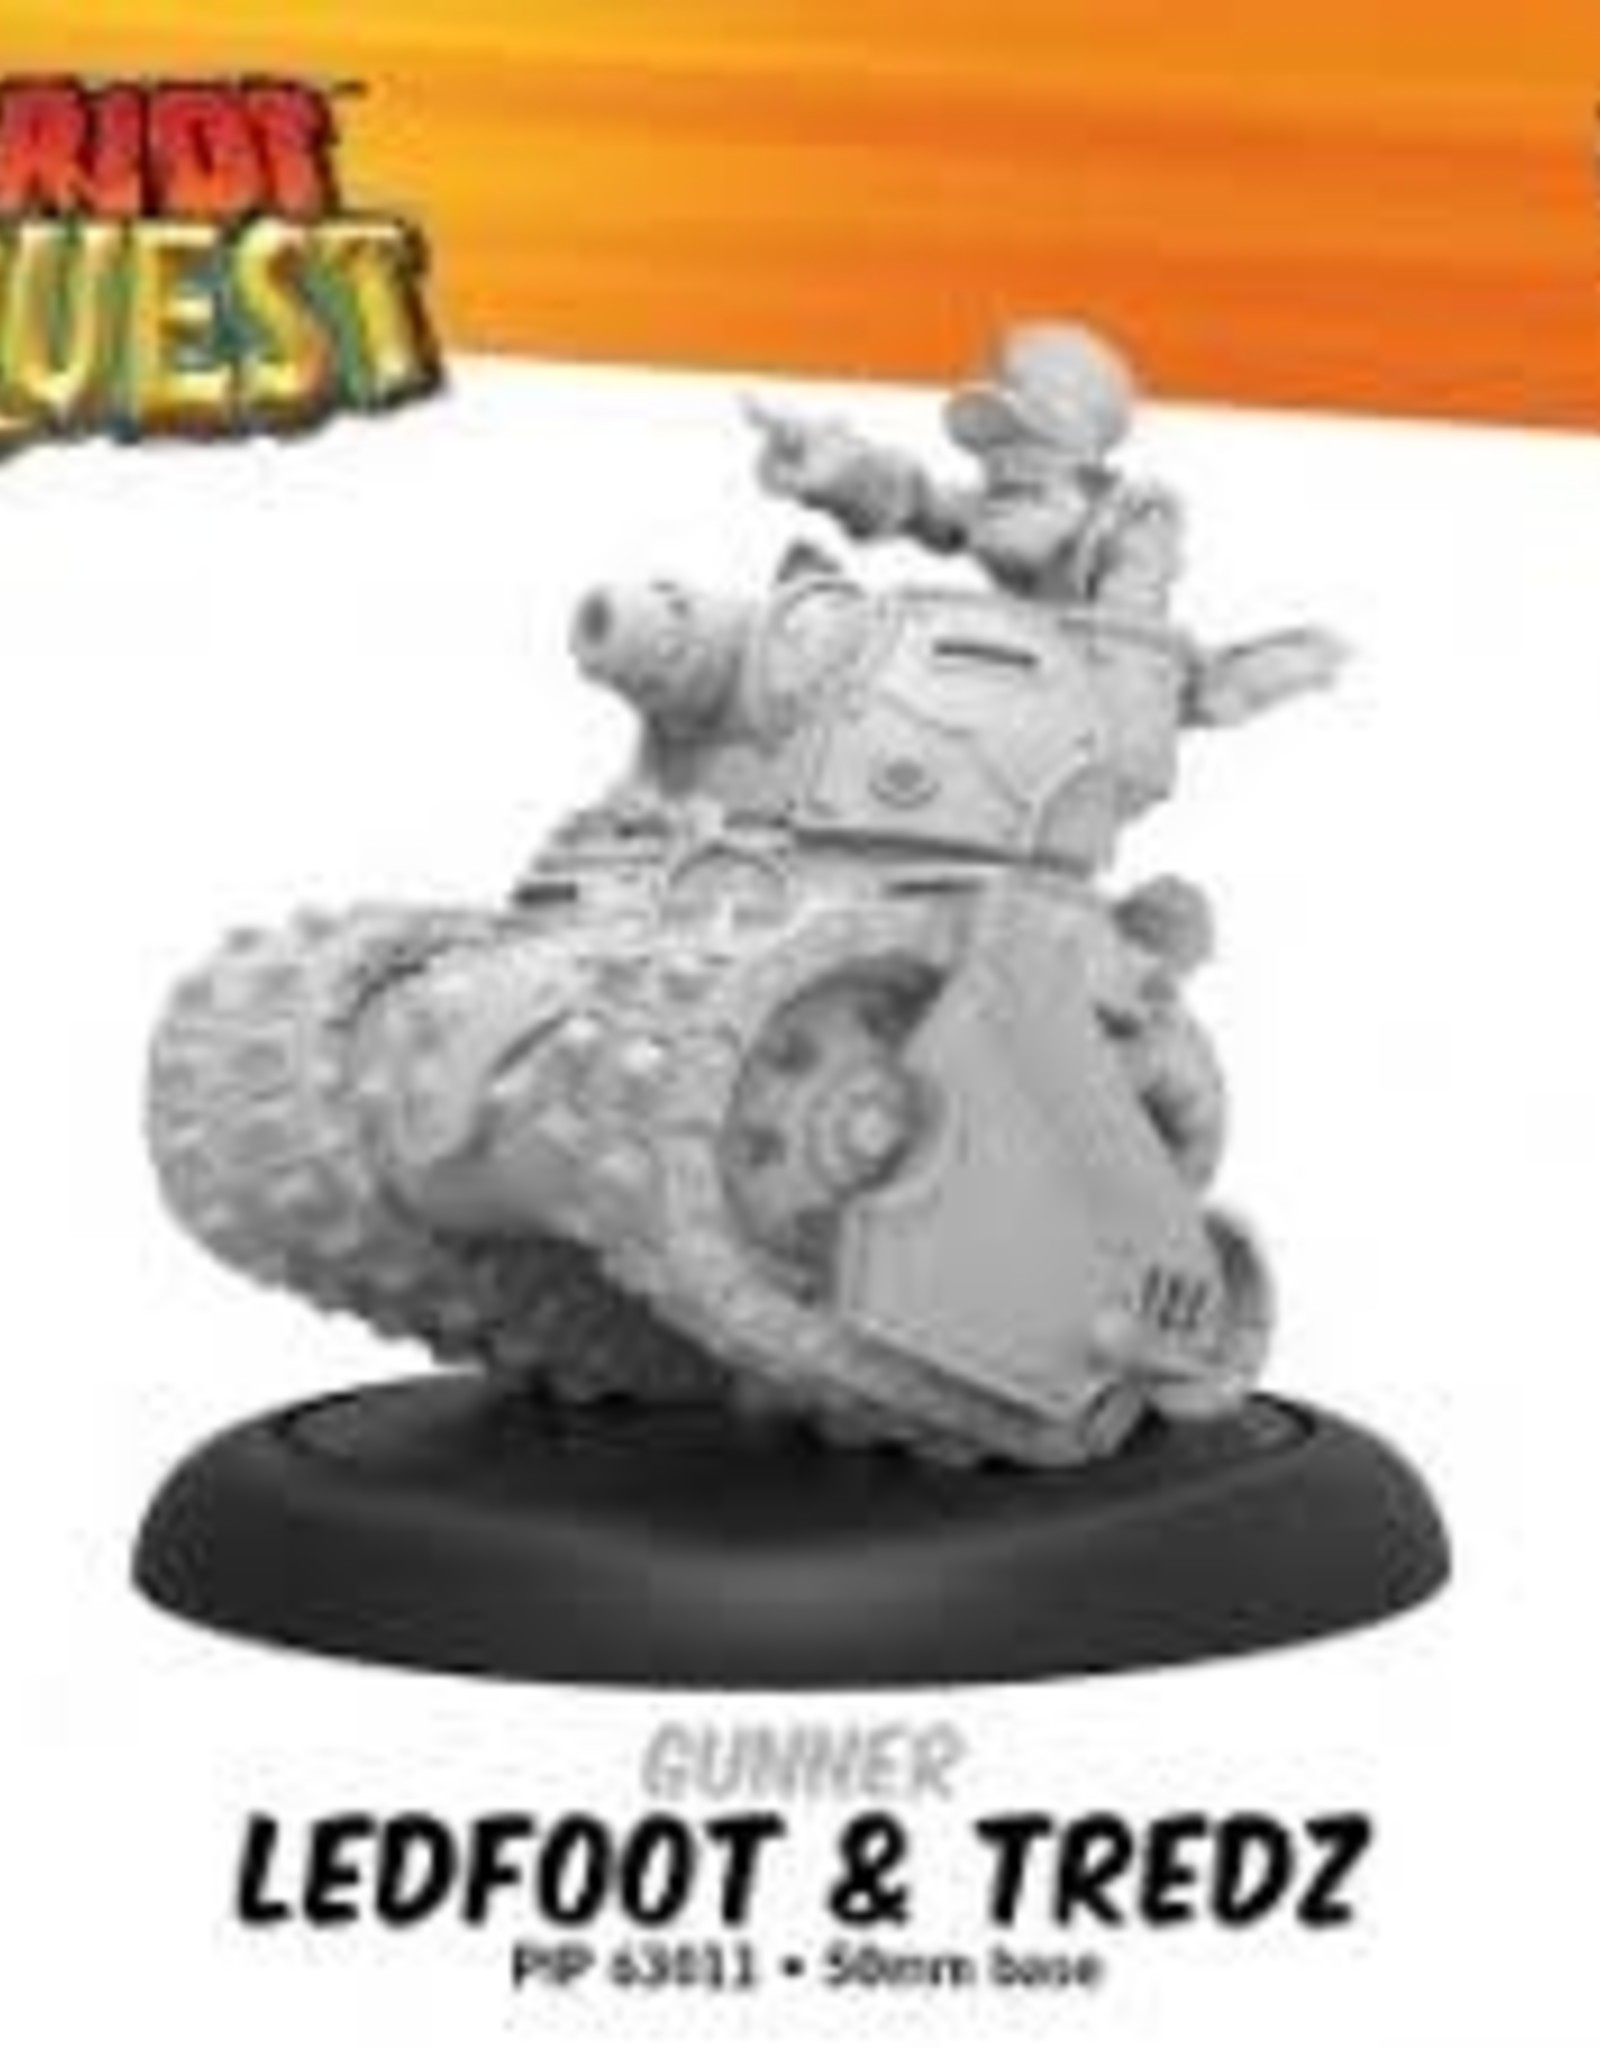 Privateer Press Riot Quest Ledfoot and Tredz